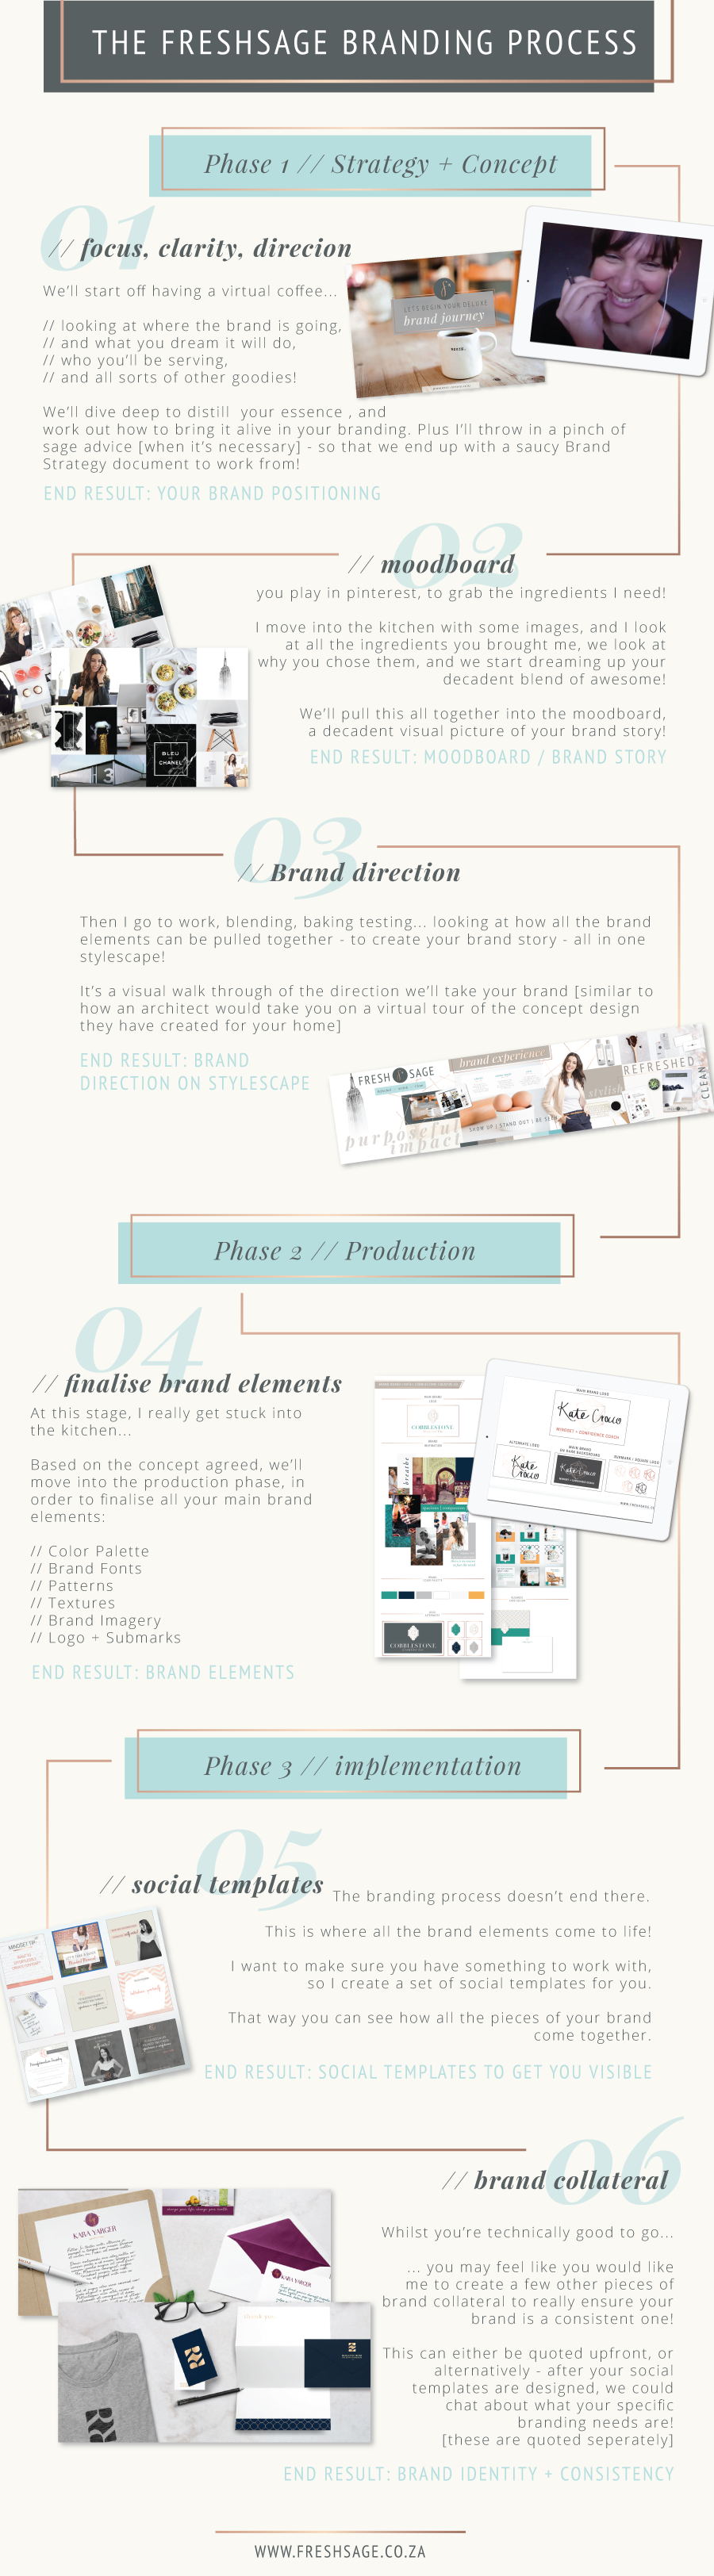 Branding Process infographic: Phase 1. Strategy + Concept, 2.Brand Production, 3. Brand Implementation